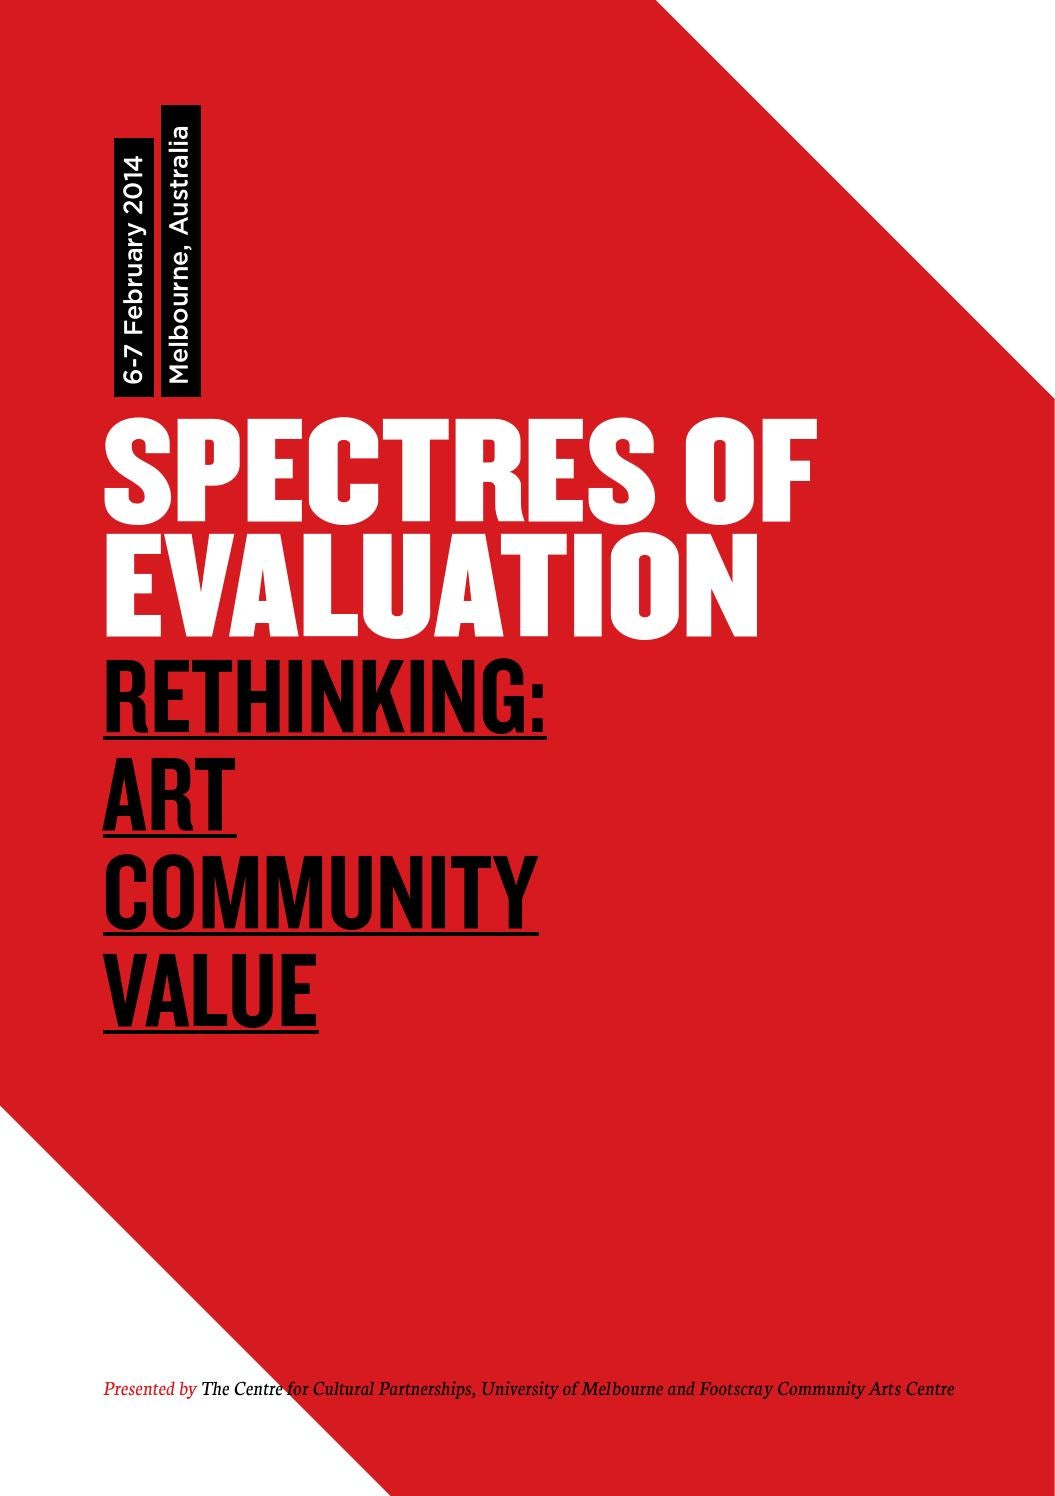 Spectres of evaluation by hybridexpression issuu fandeluxe Choice Image